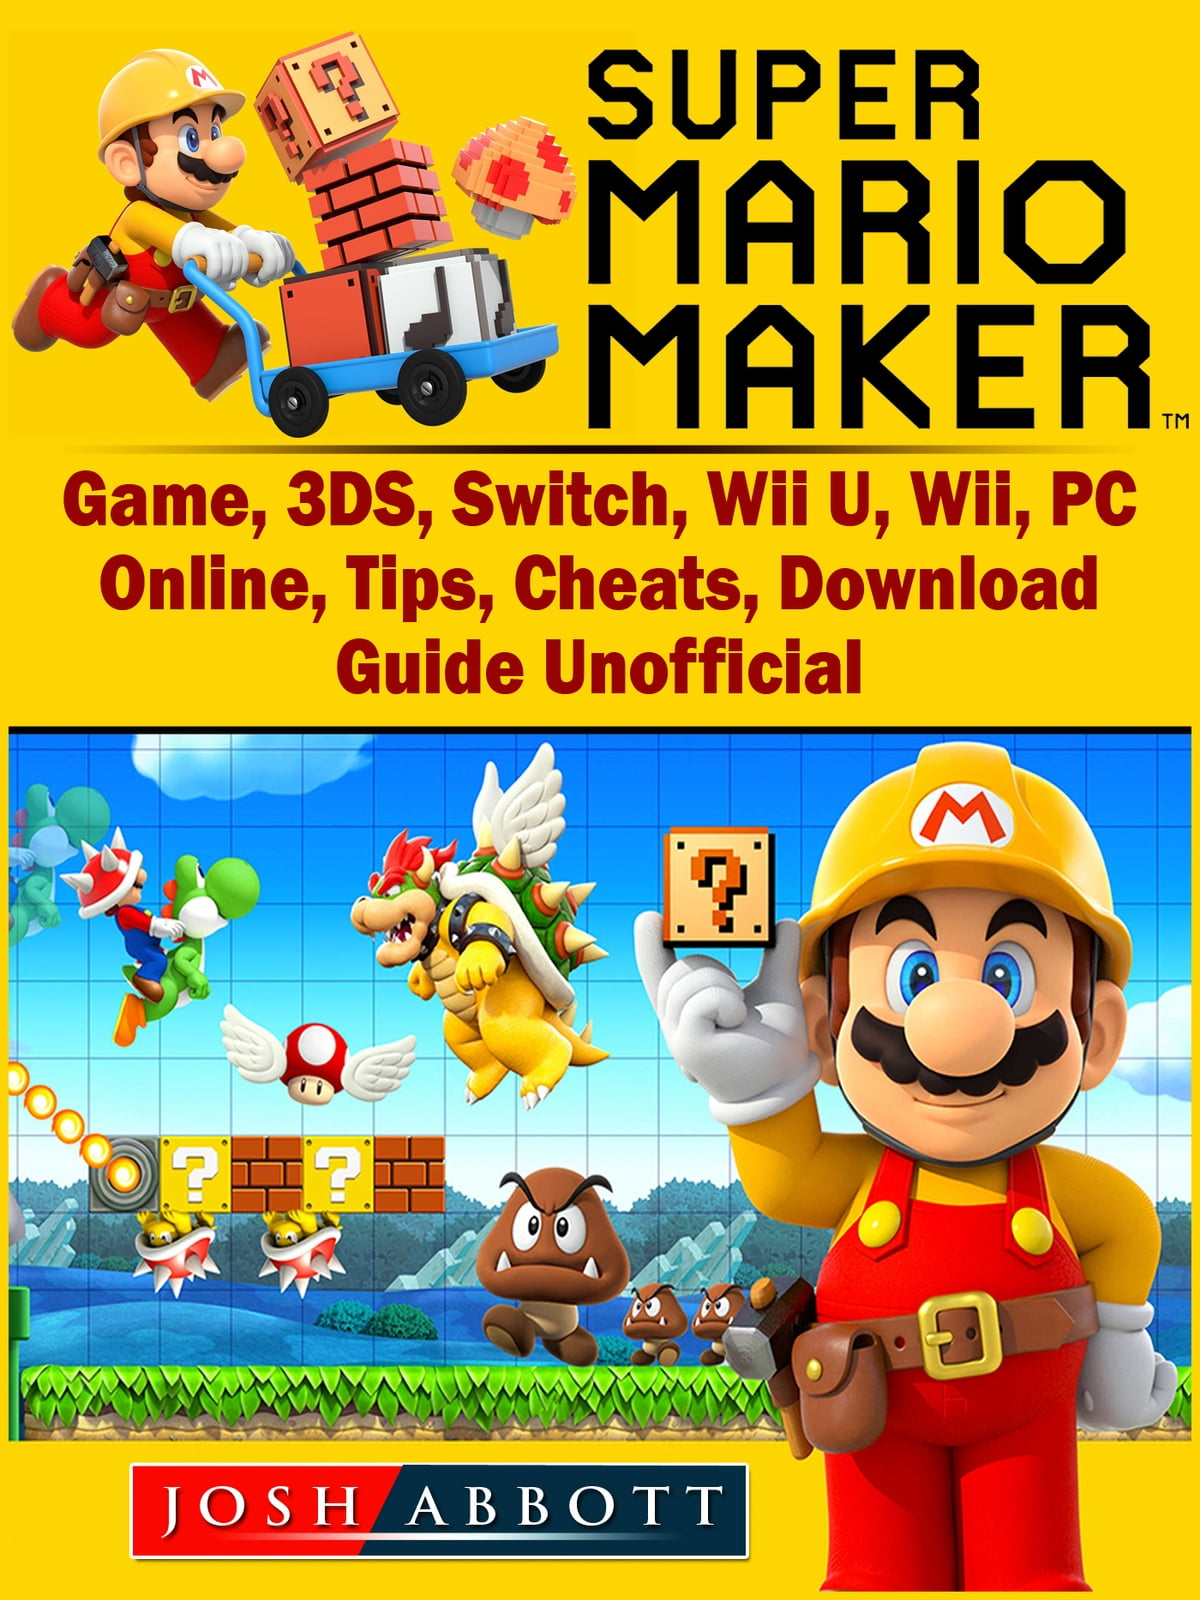 Super Mario Maker Game, 3DS, Switch, Wii U, Wii, PC, Online, Tips, Cheats,  Download, Guide Unofficial ebook by Josh Abbott - Rakuten Kobo